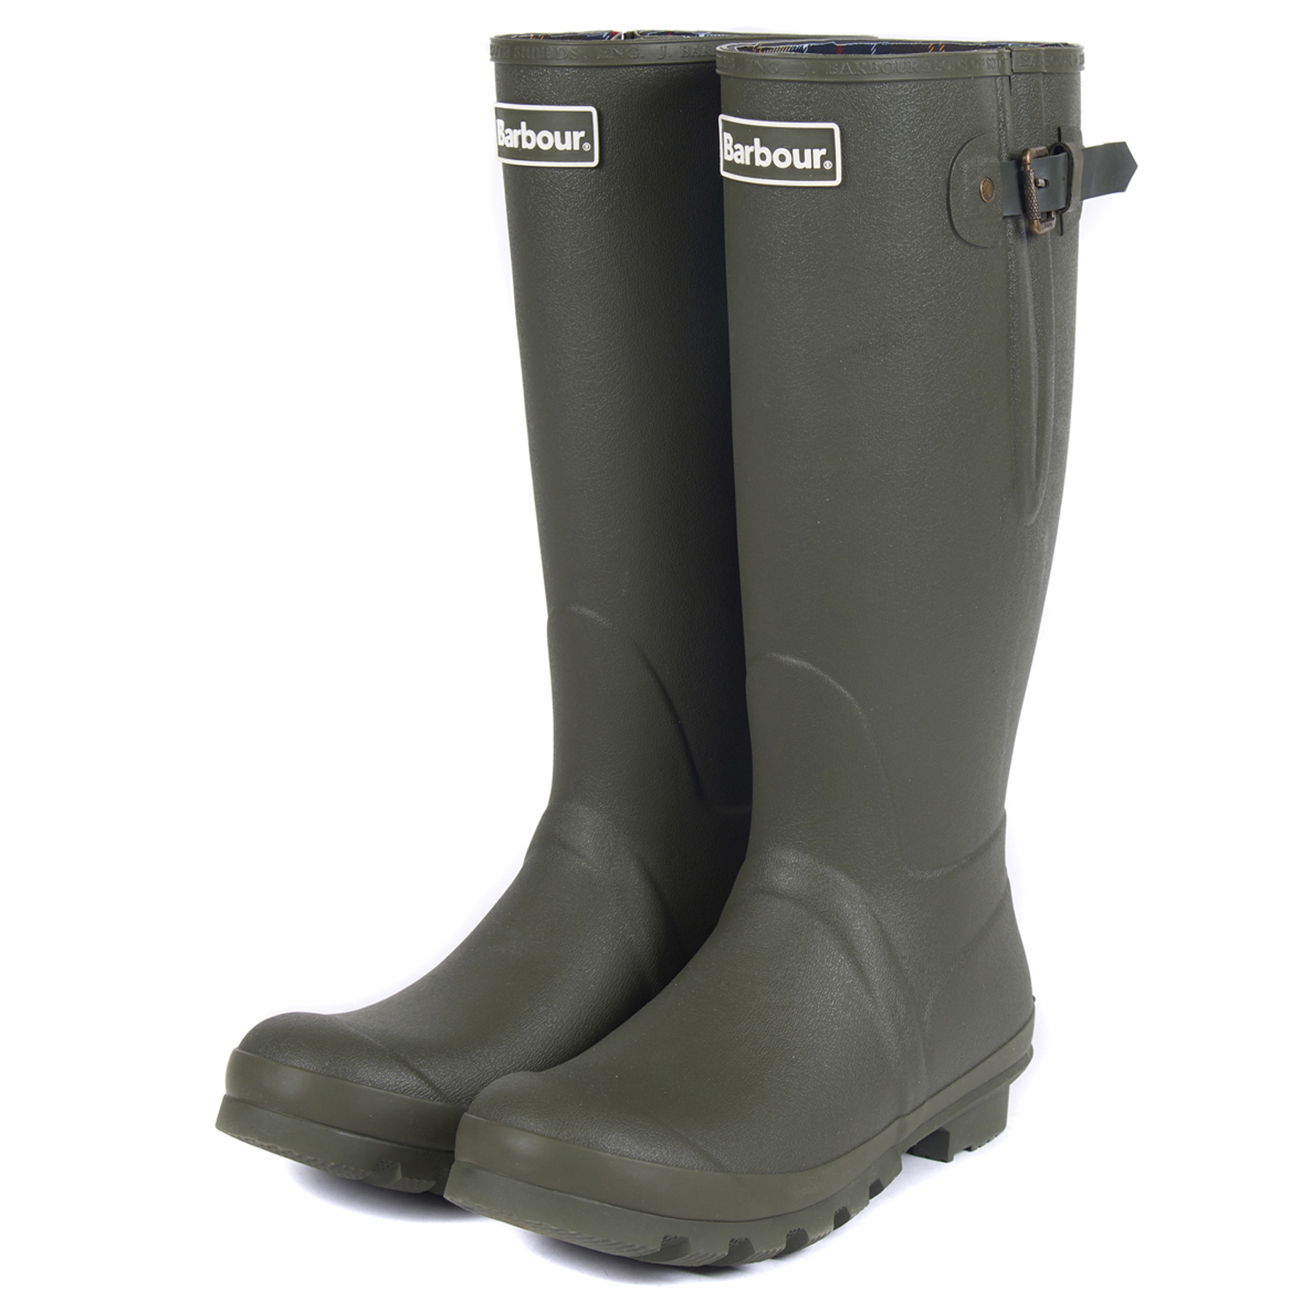 Mens-Barbour-Amble-Muck-Stable-Winter-Rain-Mud-Snow-Durable-Flat-Boots-All-Sizes miniatuur 22